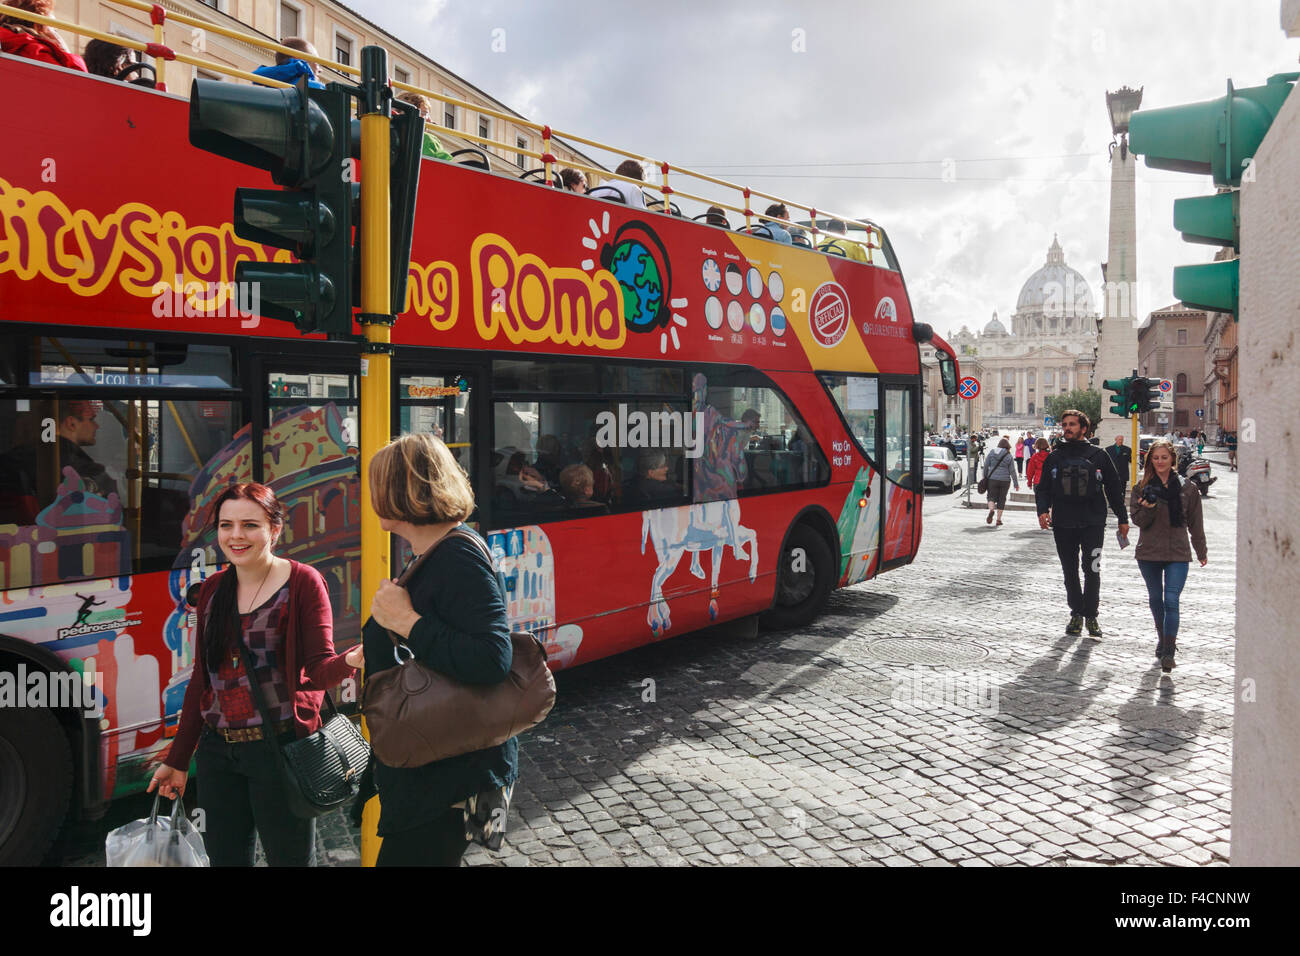 Two women next to a sightseeing bus at Vatican city, Rome, Italy - Stock Image